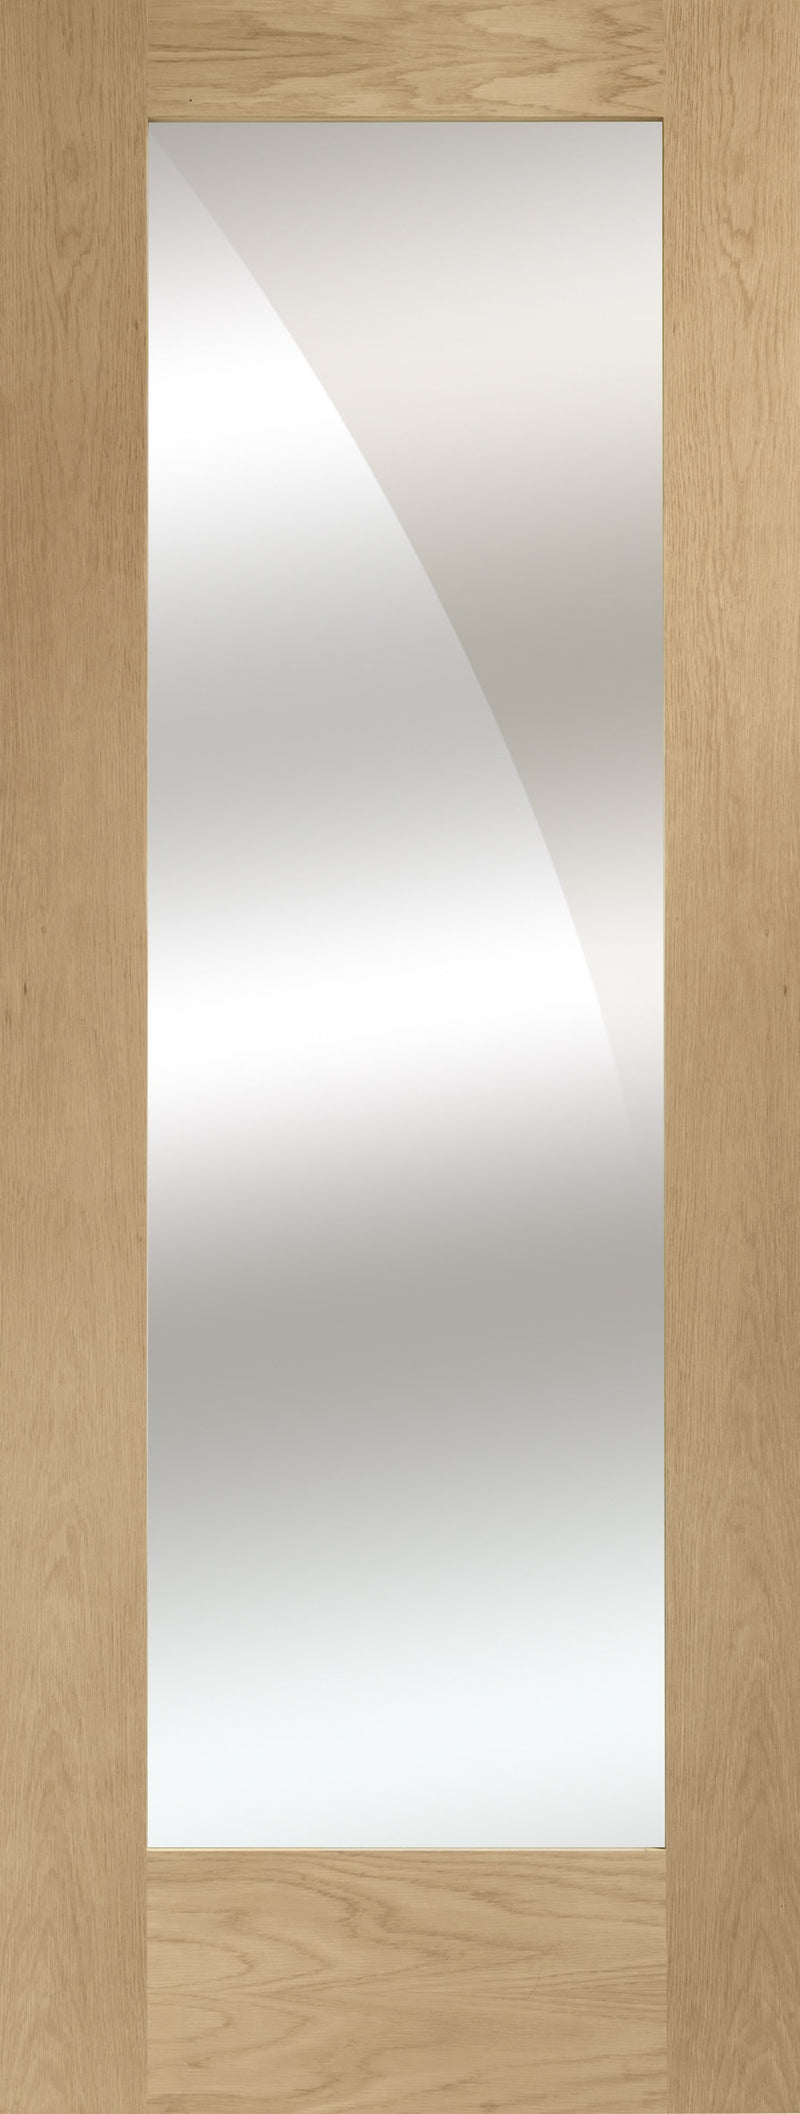 Pattern 10 internal oak mirror door.